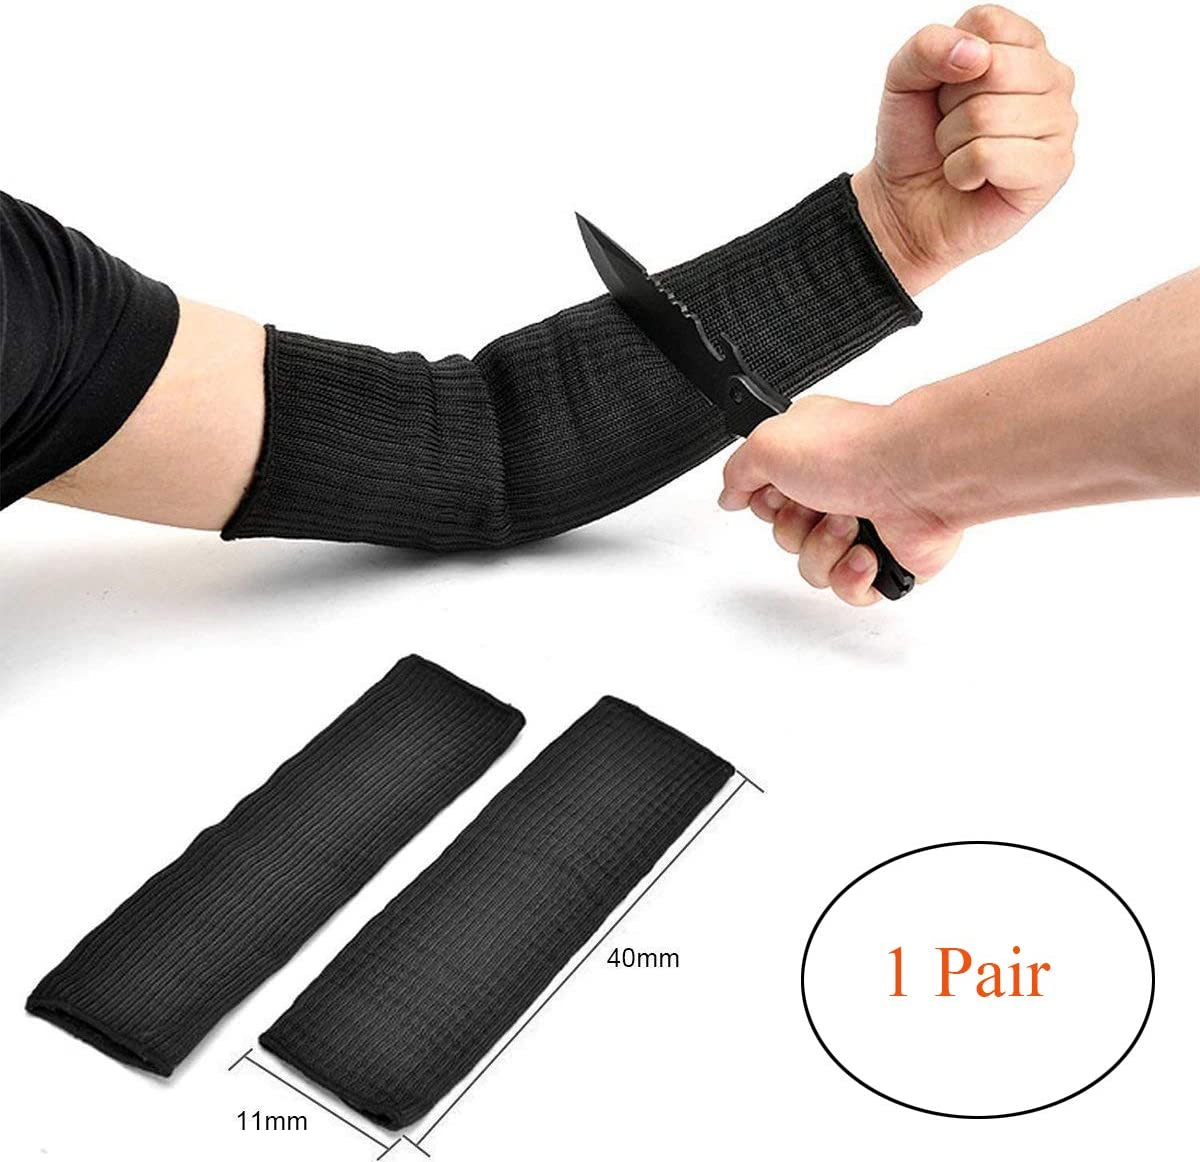 1 pair Outdoors Black Resistant Cut Arm Sleeve tector N9I5 Wire V0Q7 Covers T2N1